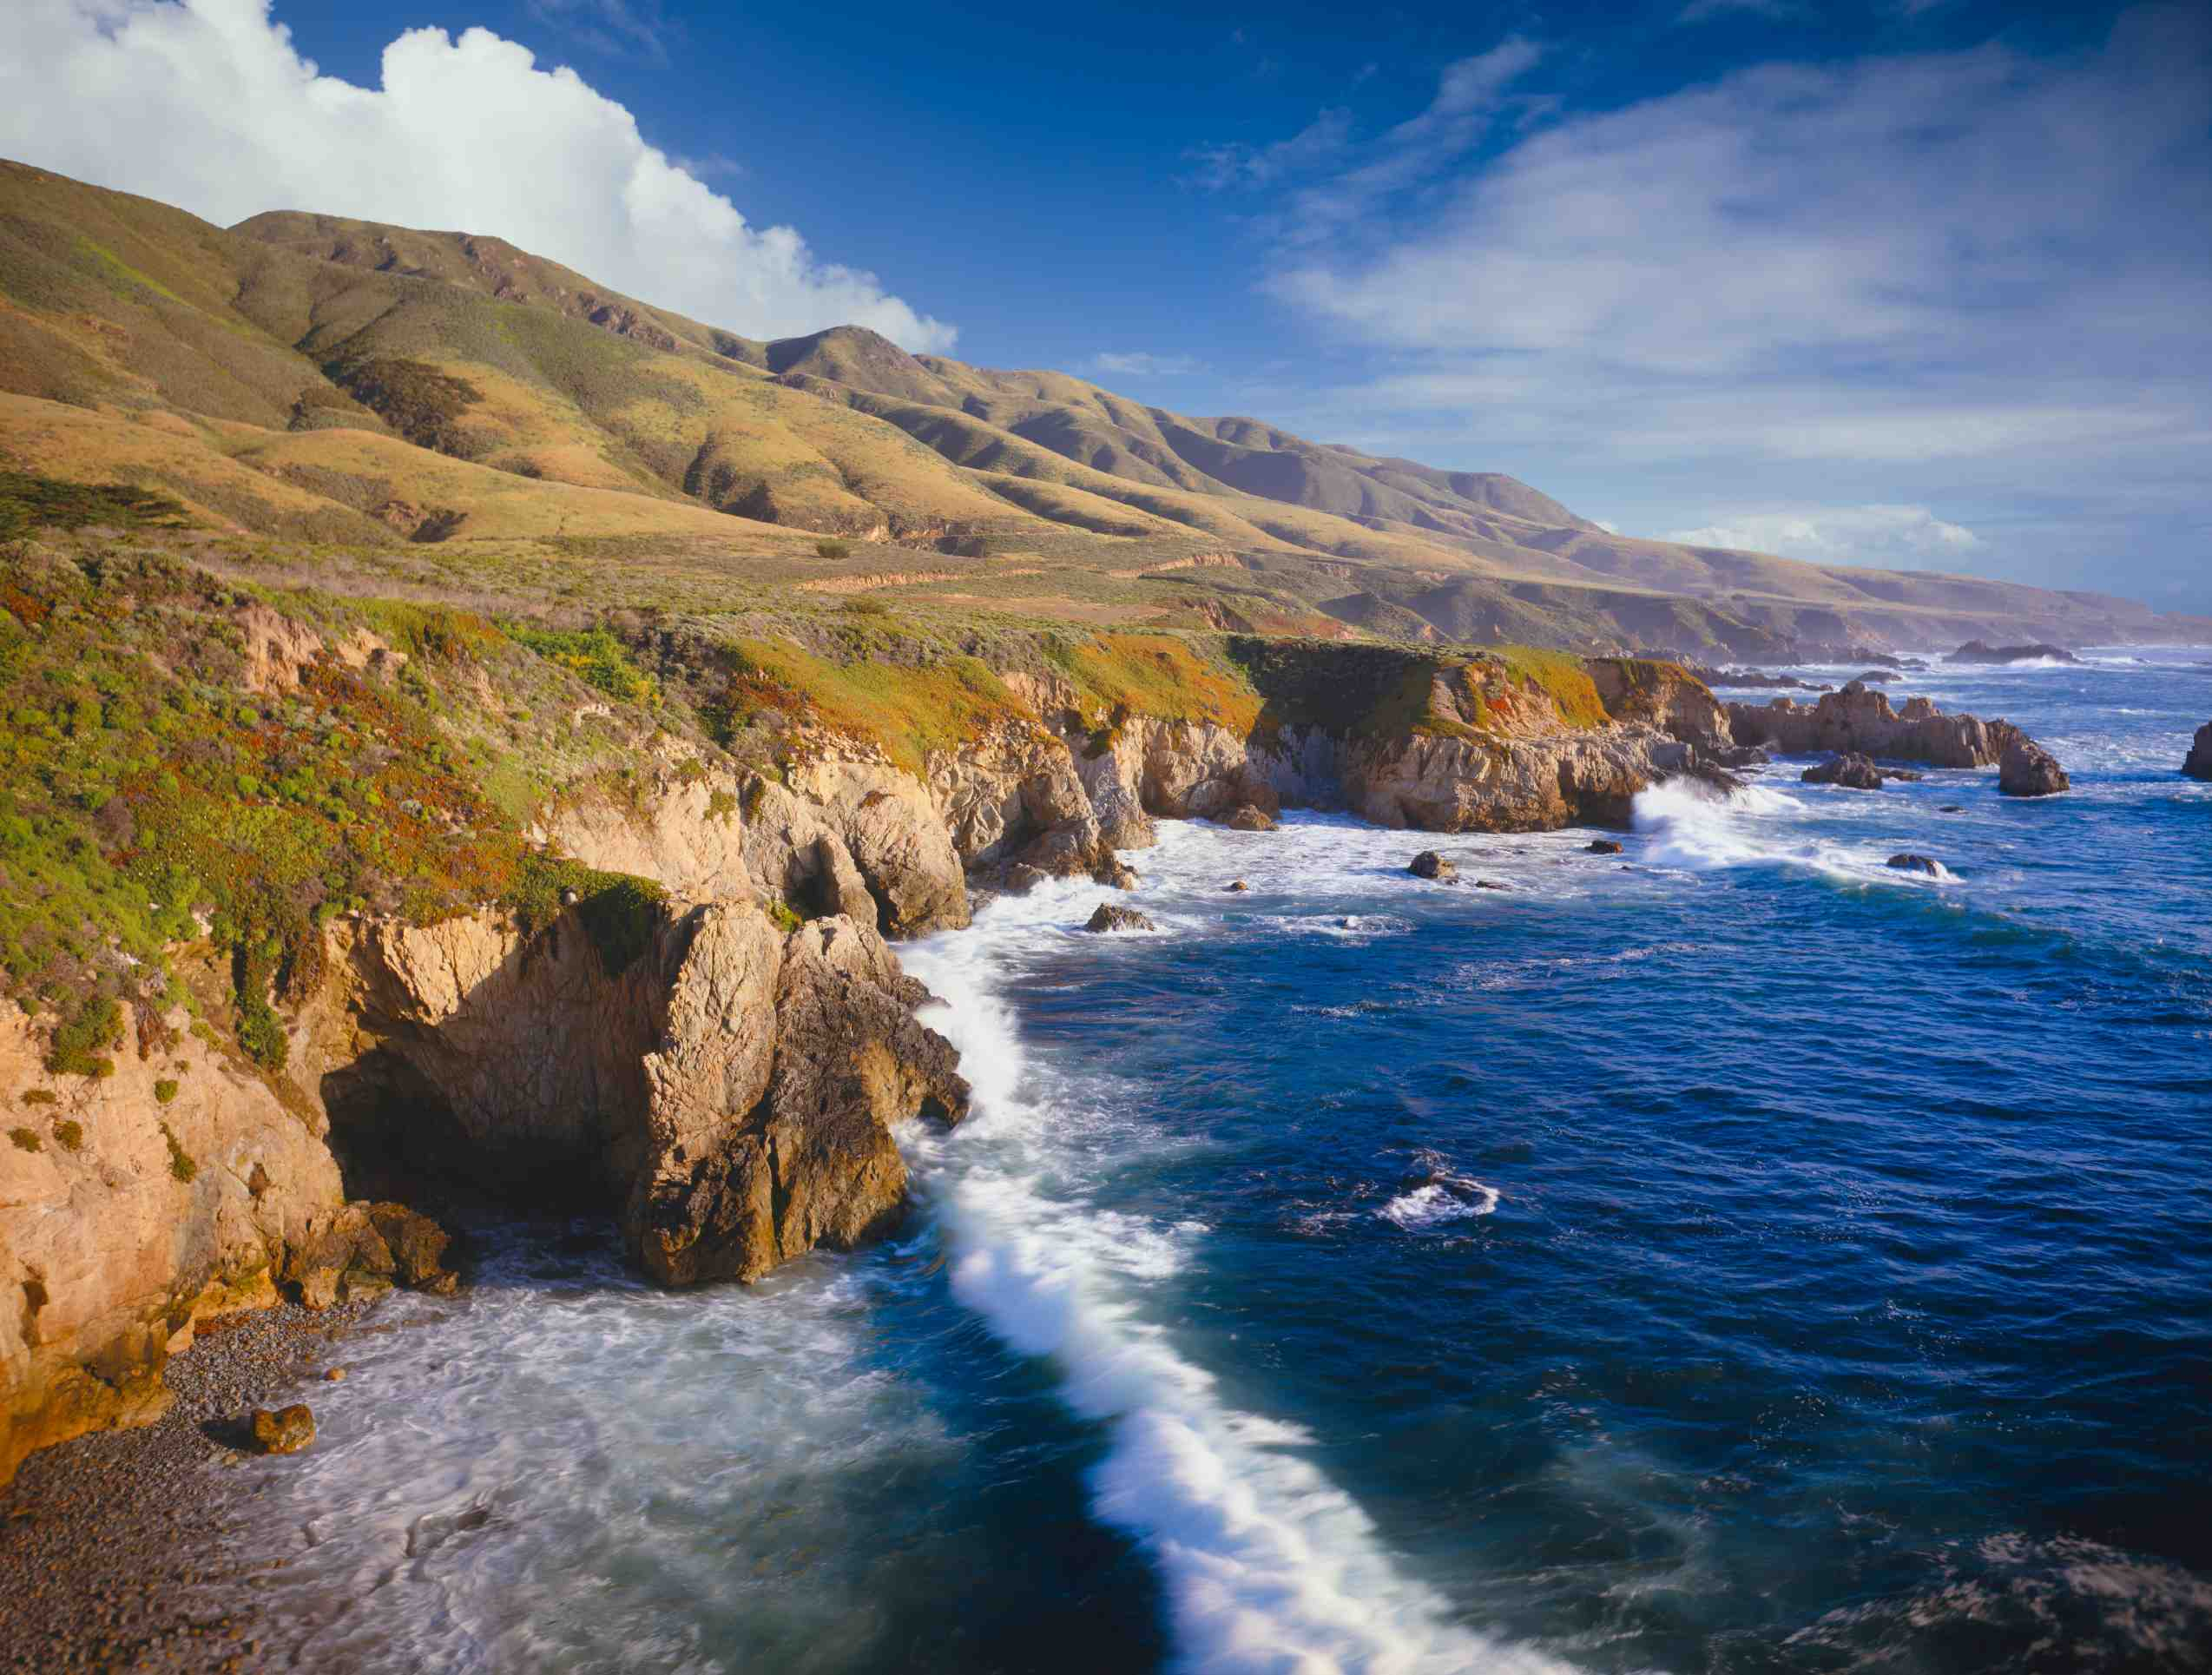 Road Trip: Cruising the California Coast